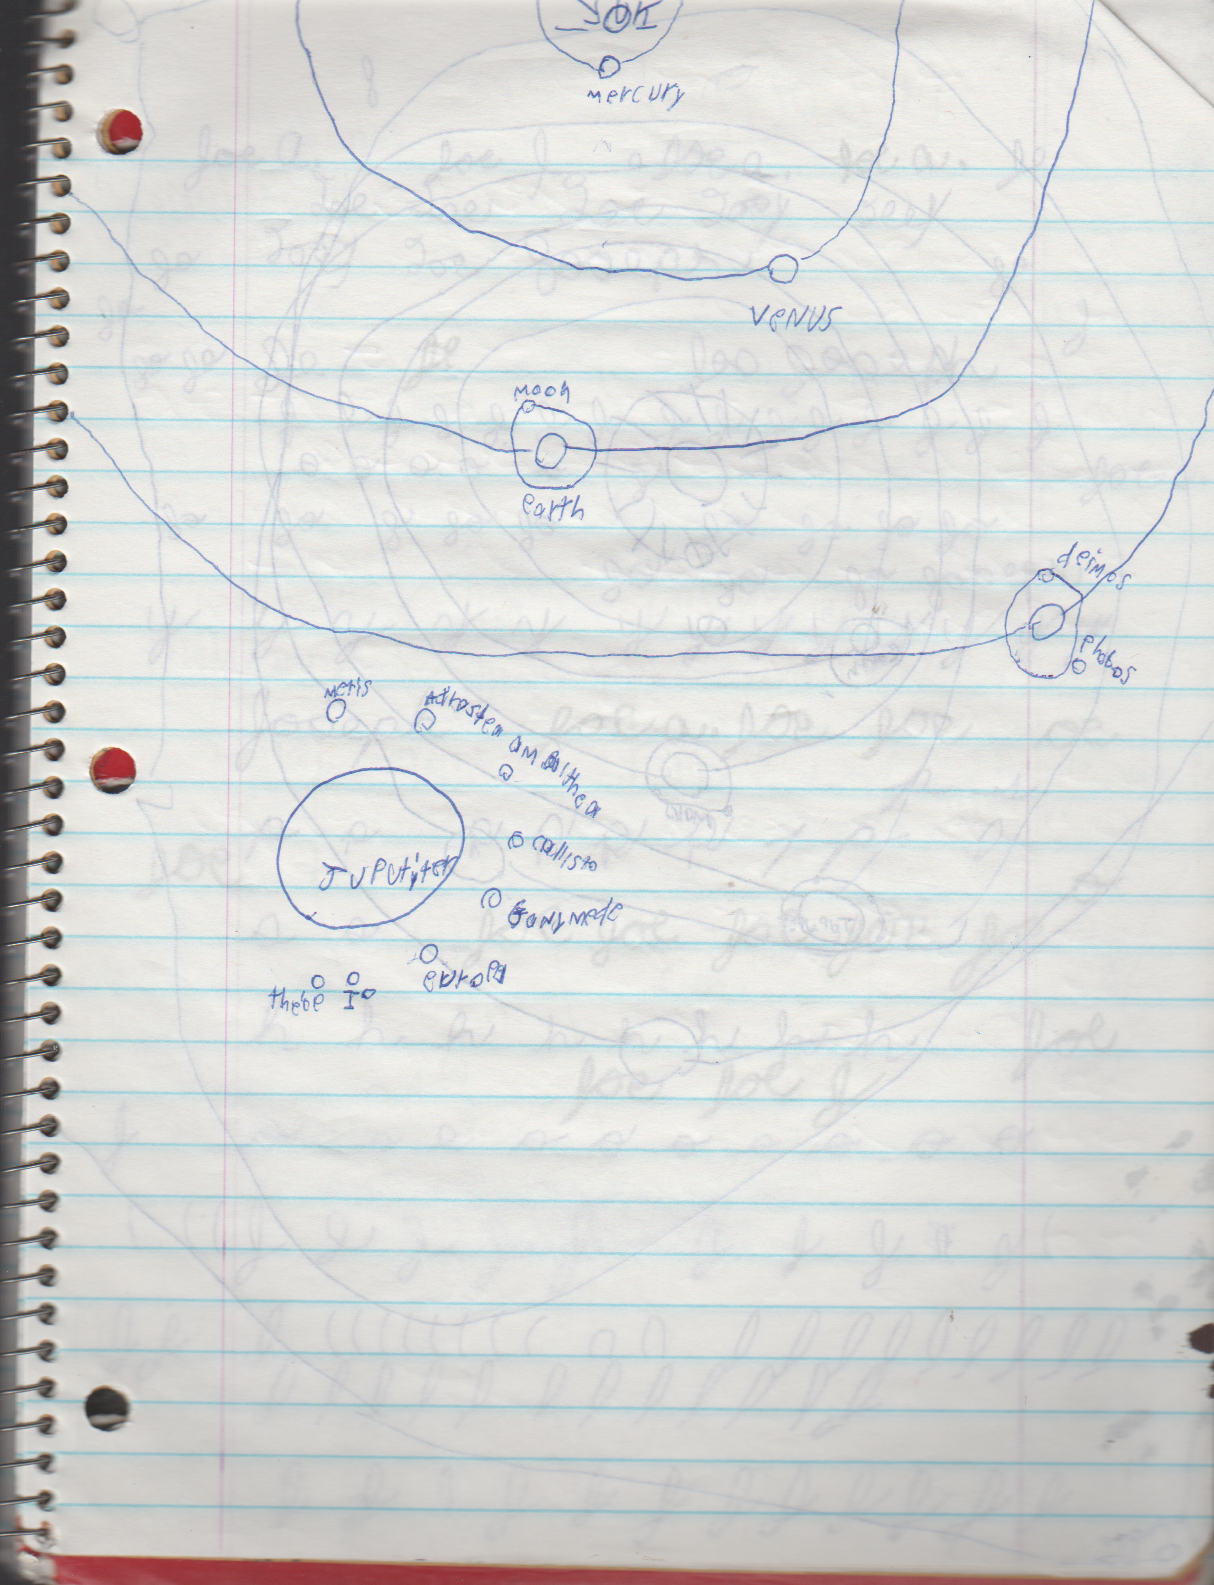 1996-08-18 - Saturday - 11 yr old Joey Arnold's School Book, dates through to 1998 apx, mostly 96, Writings, Drawings, Etc-093.png